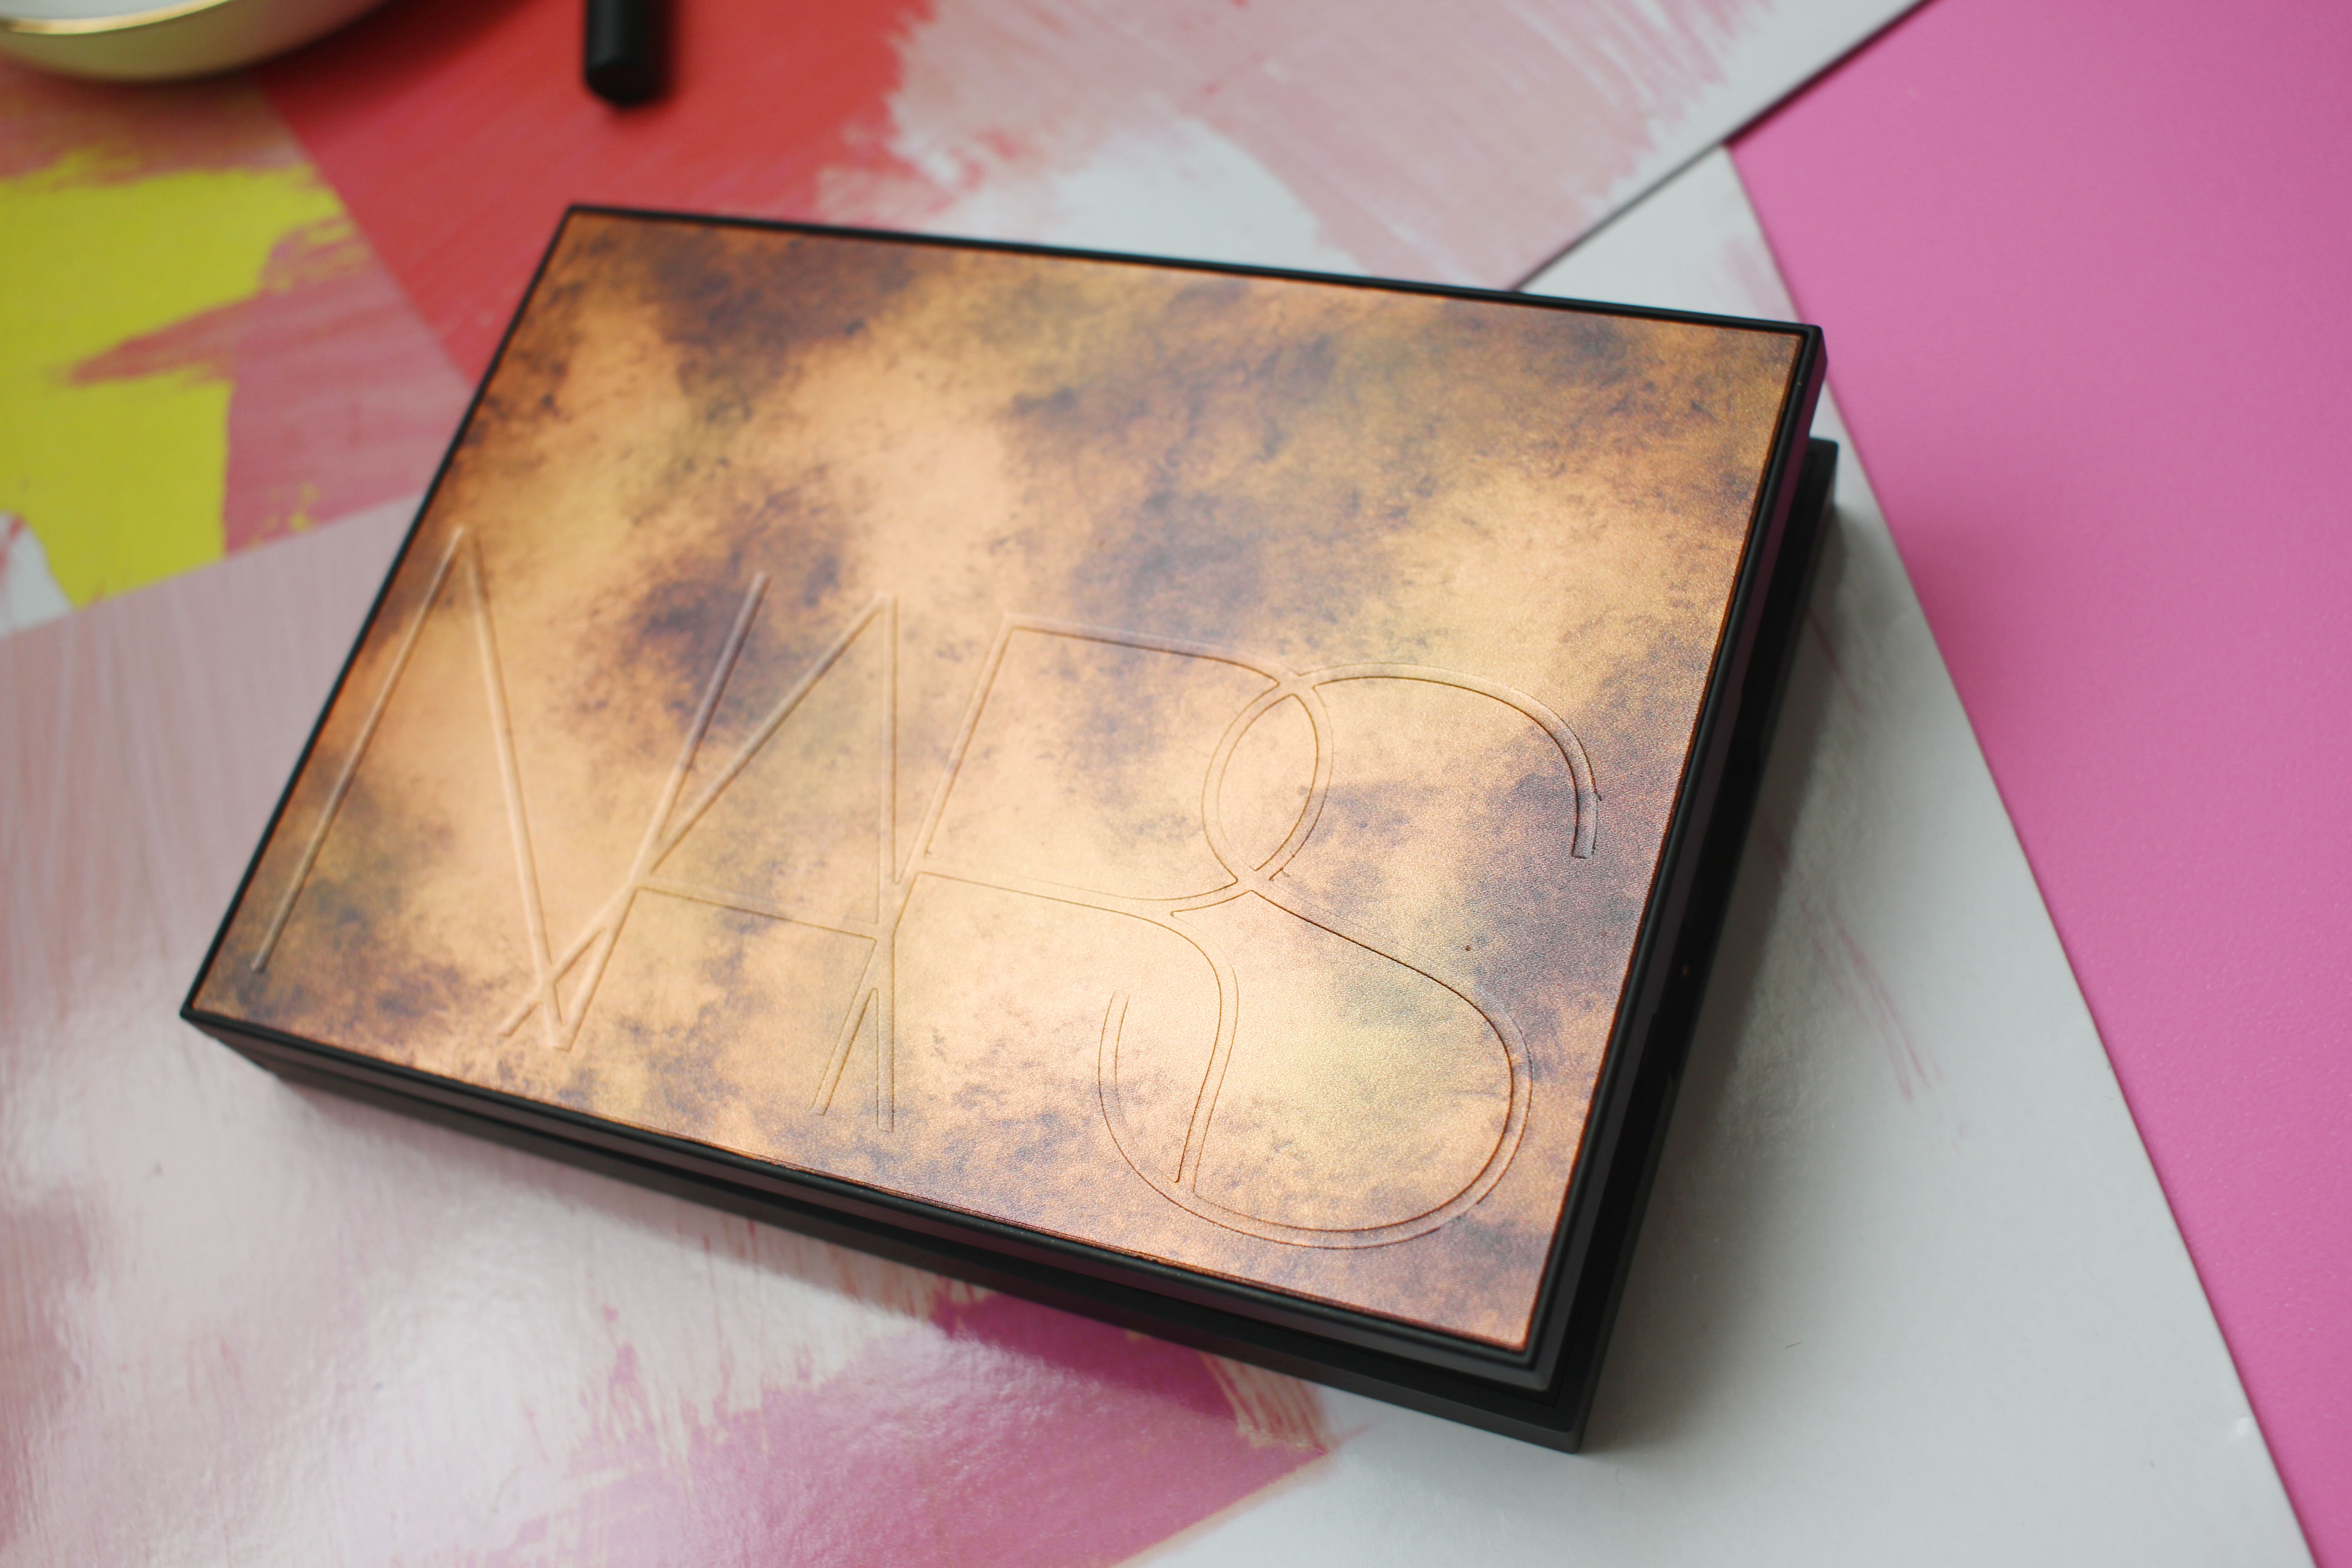 NARS Bord De Plage Highlighting and Bronzing Palette review